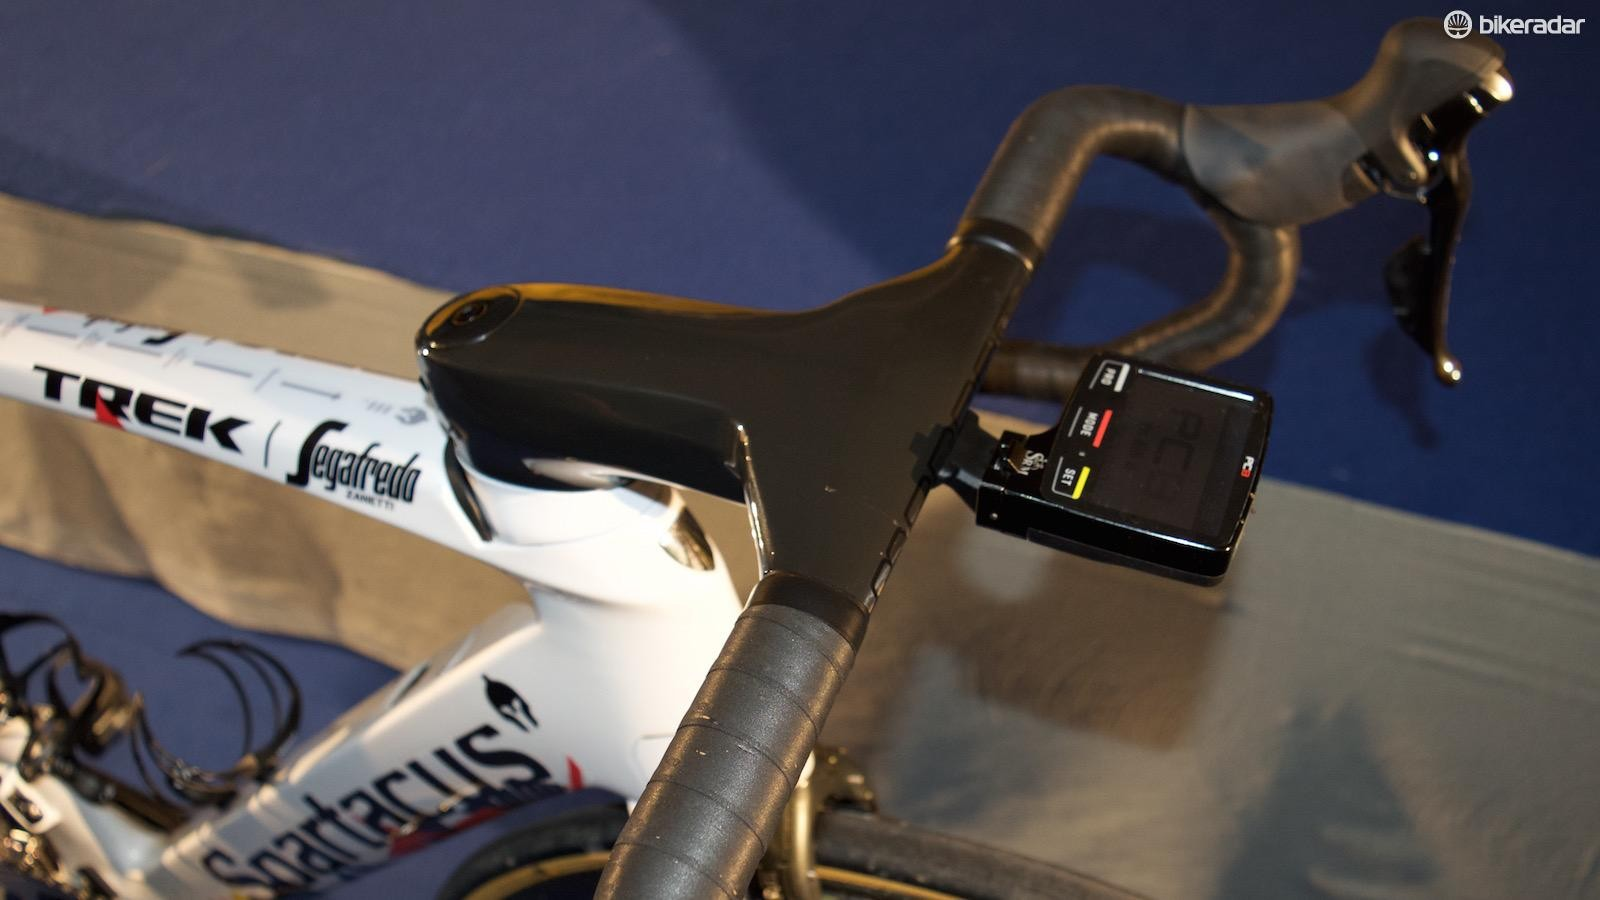 The one-piece carbon stem and handlebars provide stiffness and aerodynamic gains